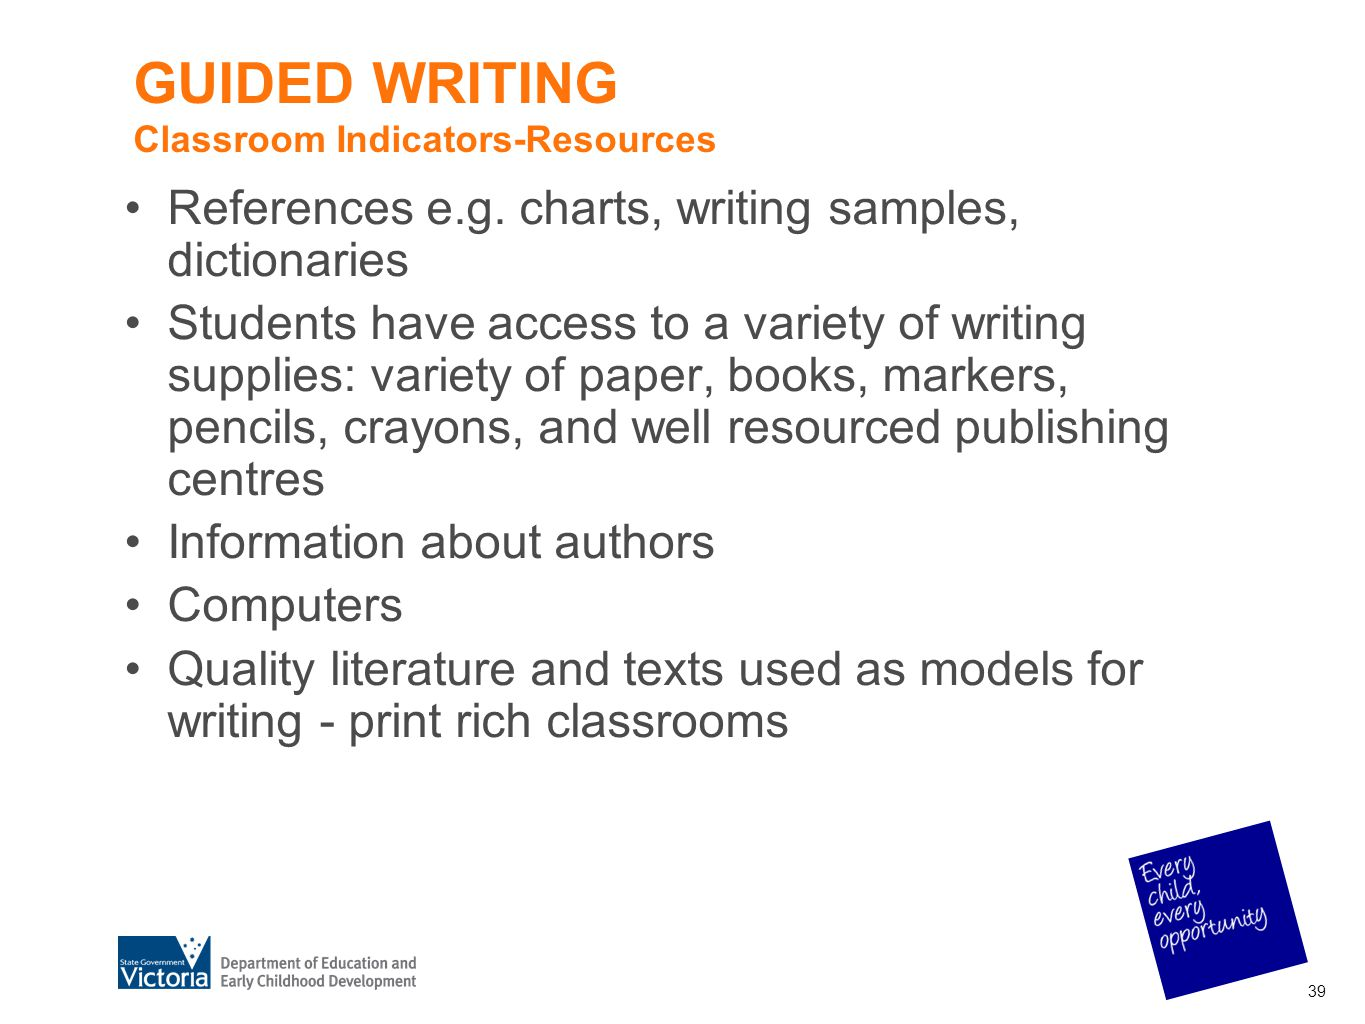 GUIDED WRITING Classroom Indicators-Resources